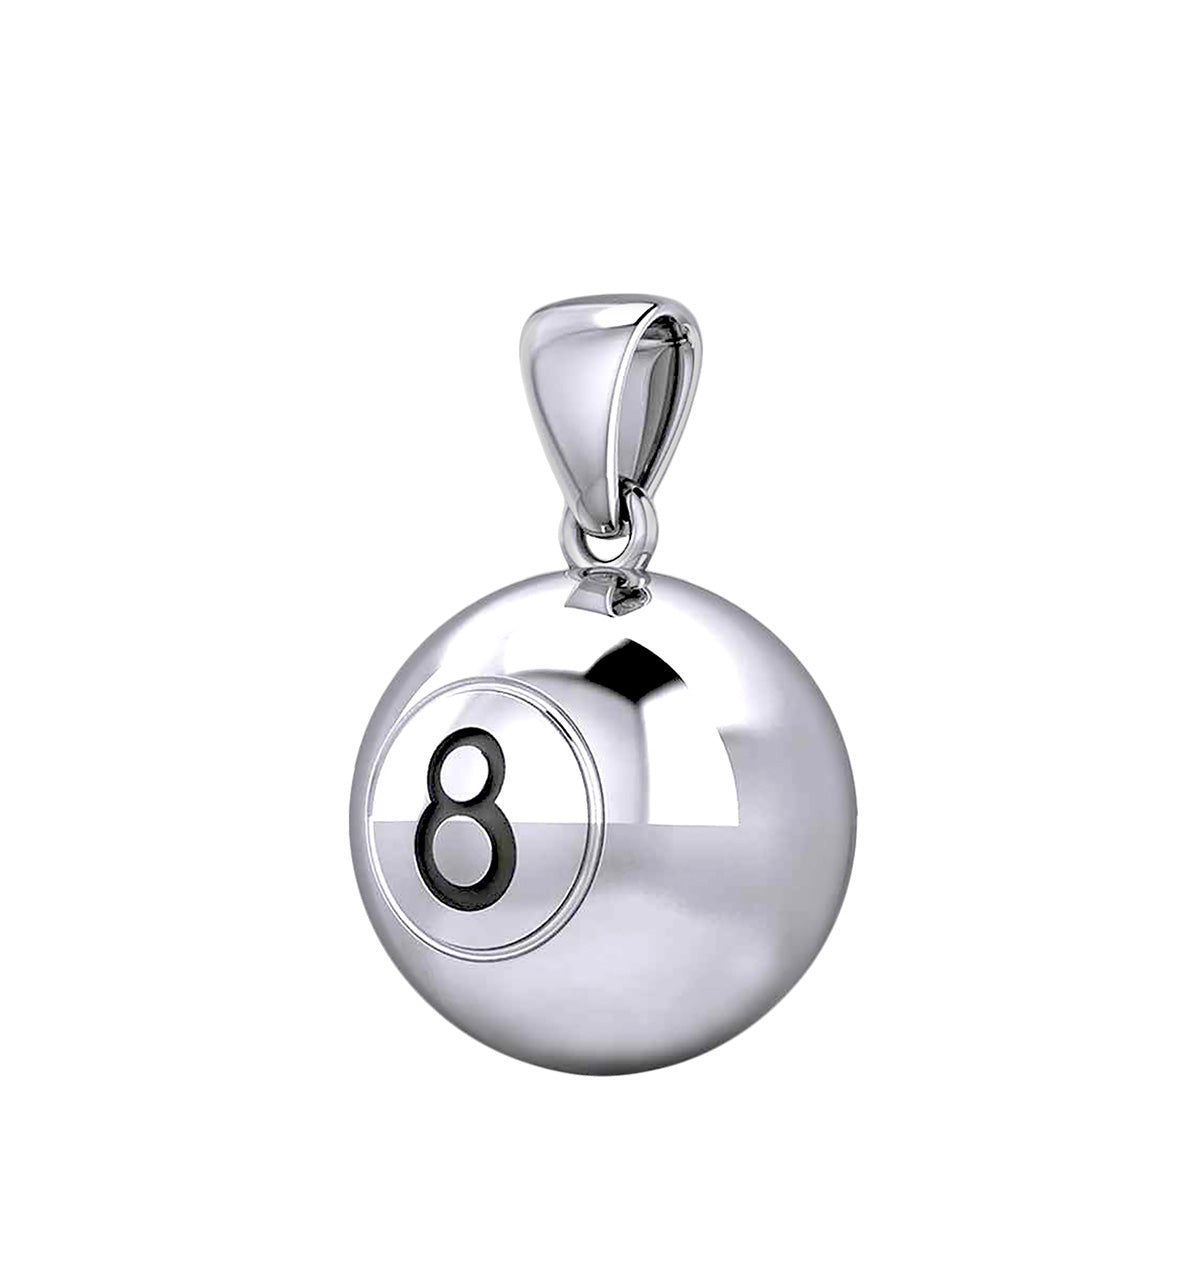 Ball Necklace In 925 Sterling Silver - Pendant Only